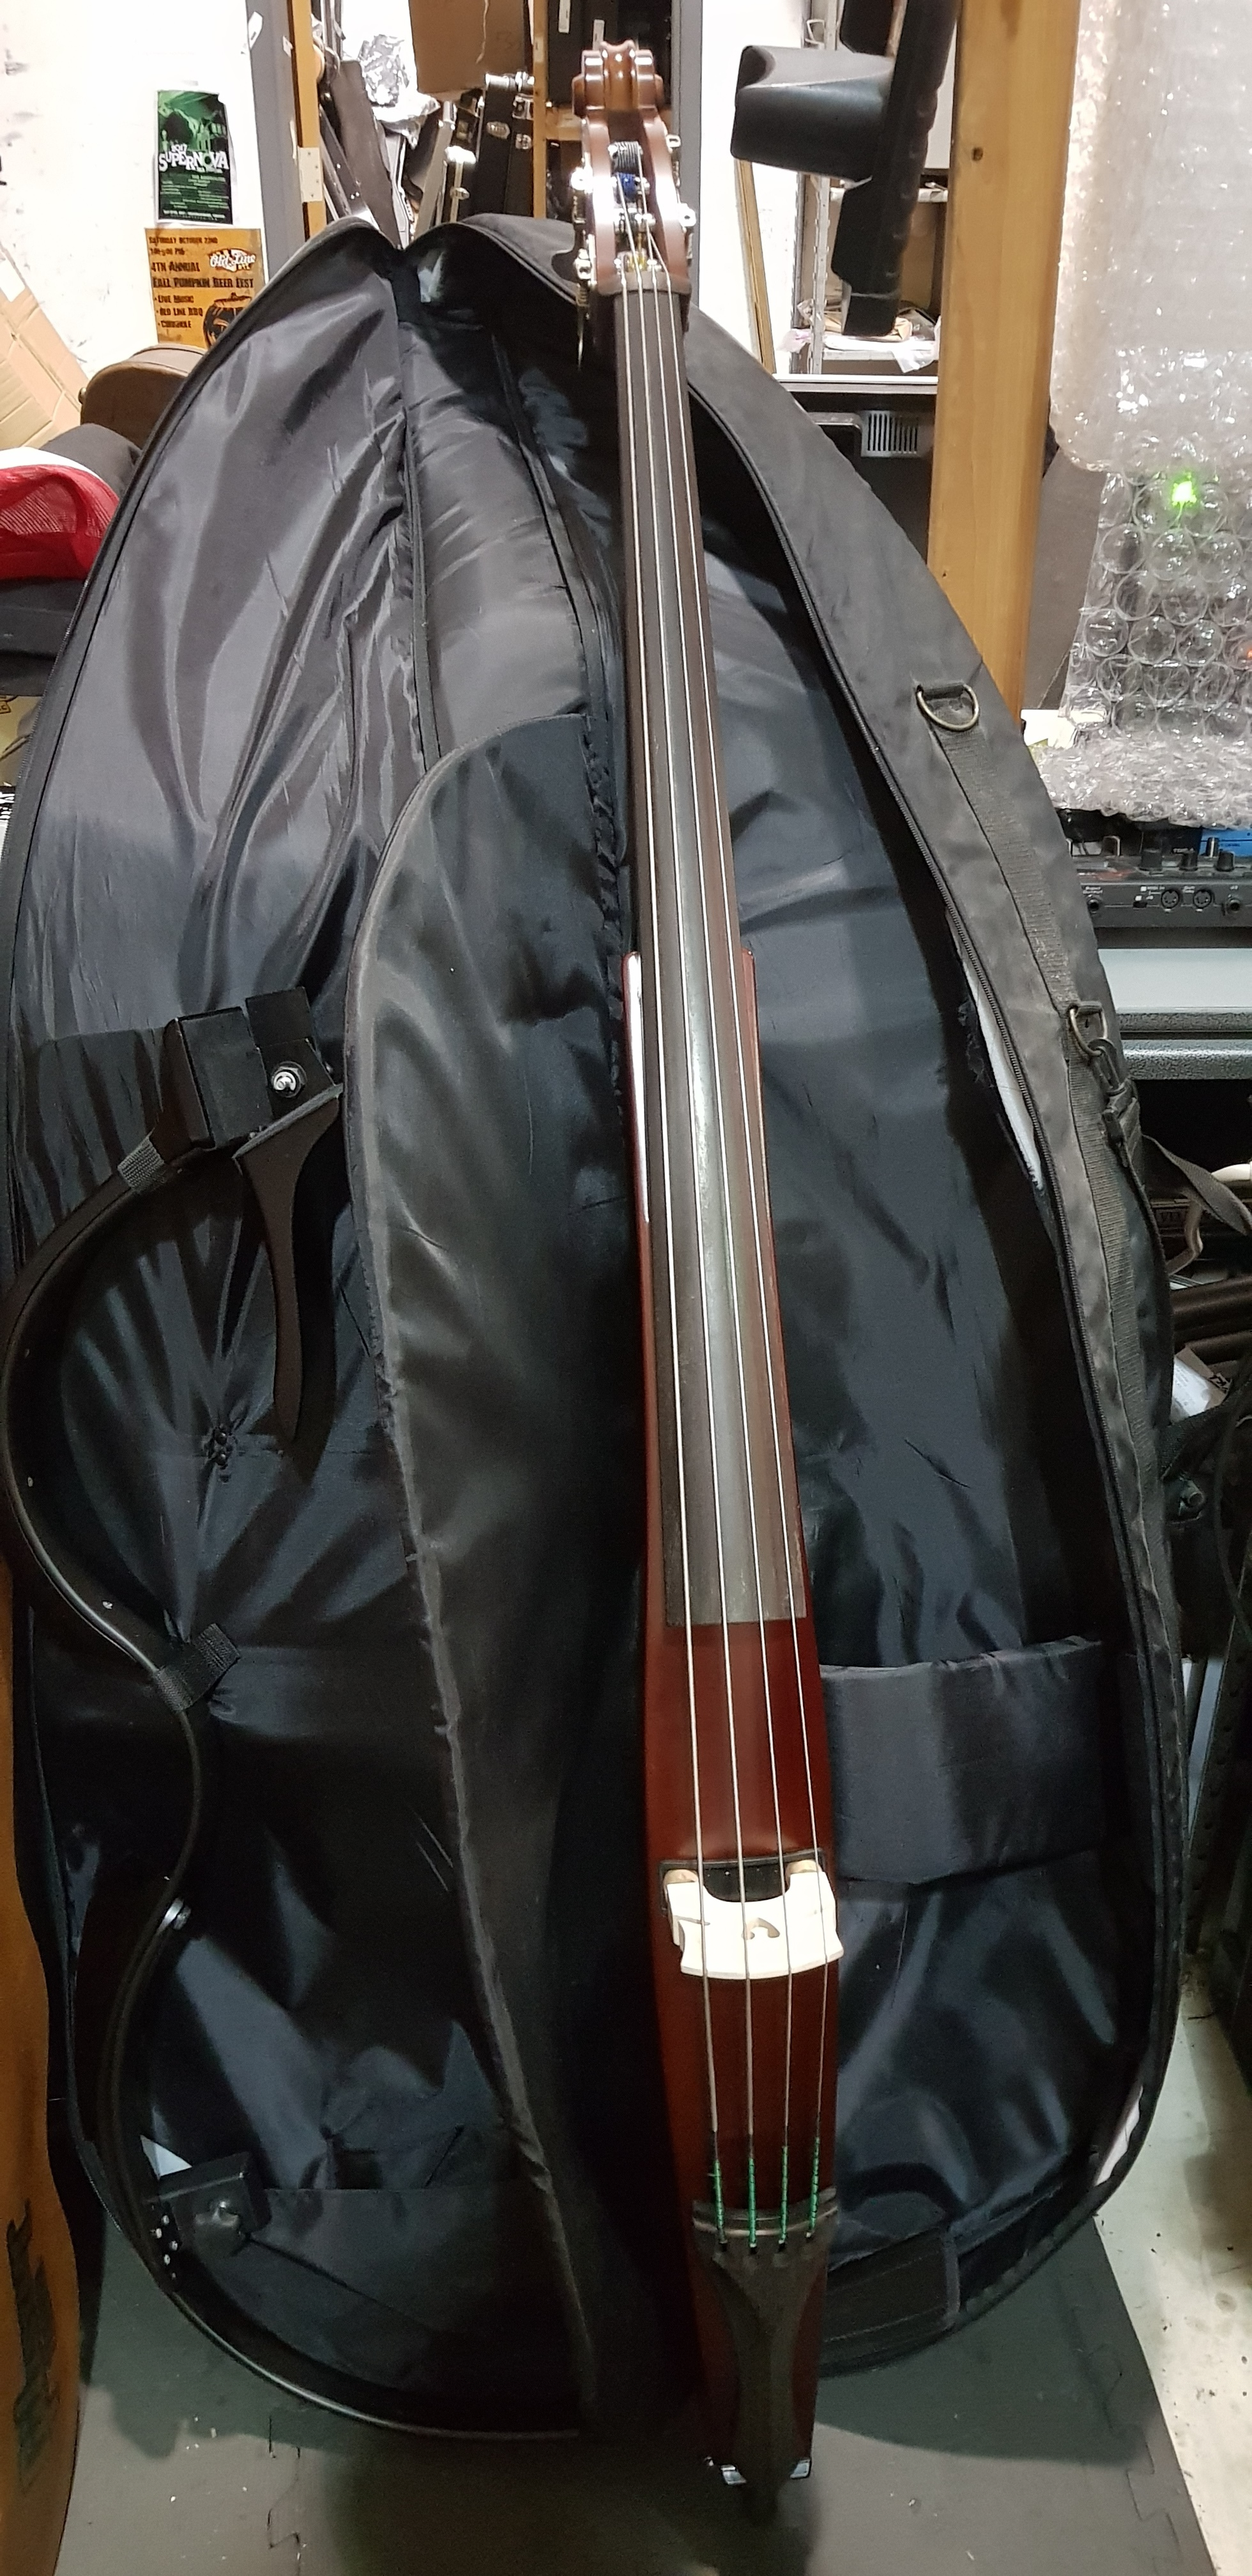 YAMAHA Silent Bass Model SLB-100 Upright Bass w/ Bag - Local Pickup Only!